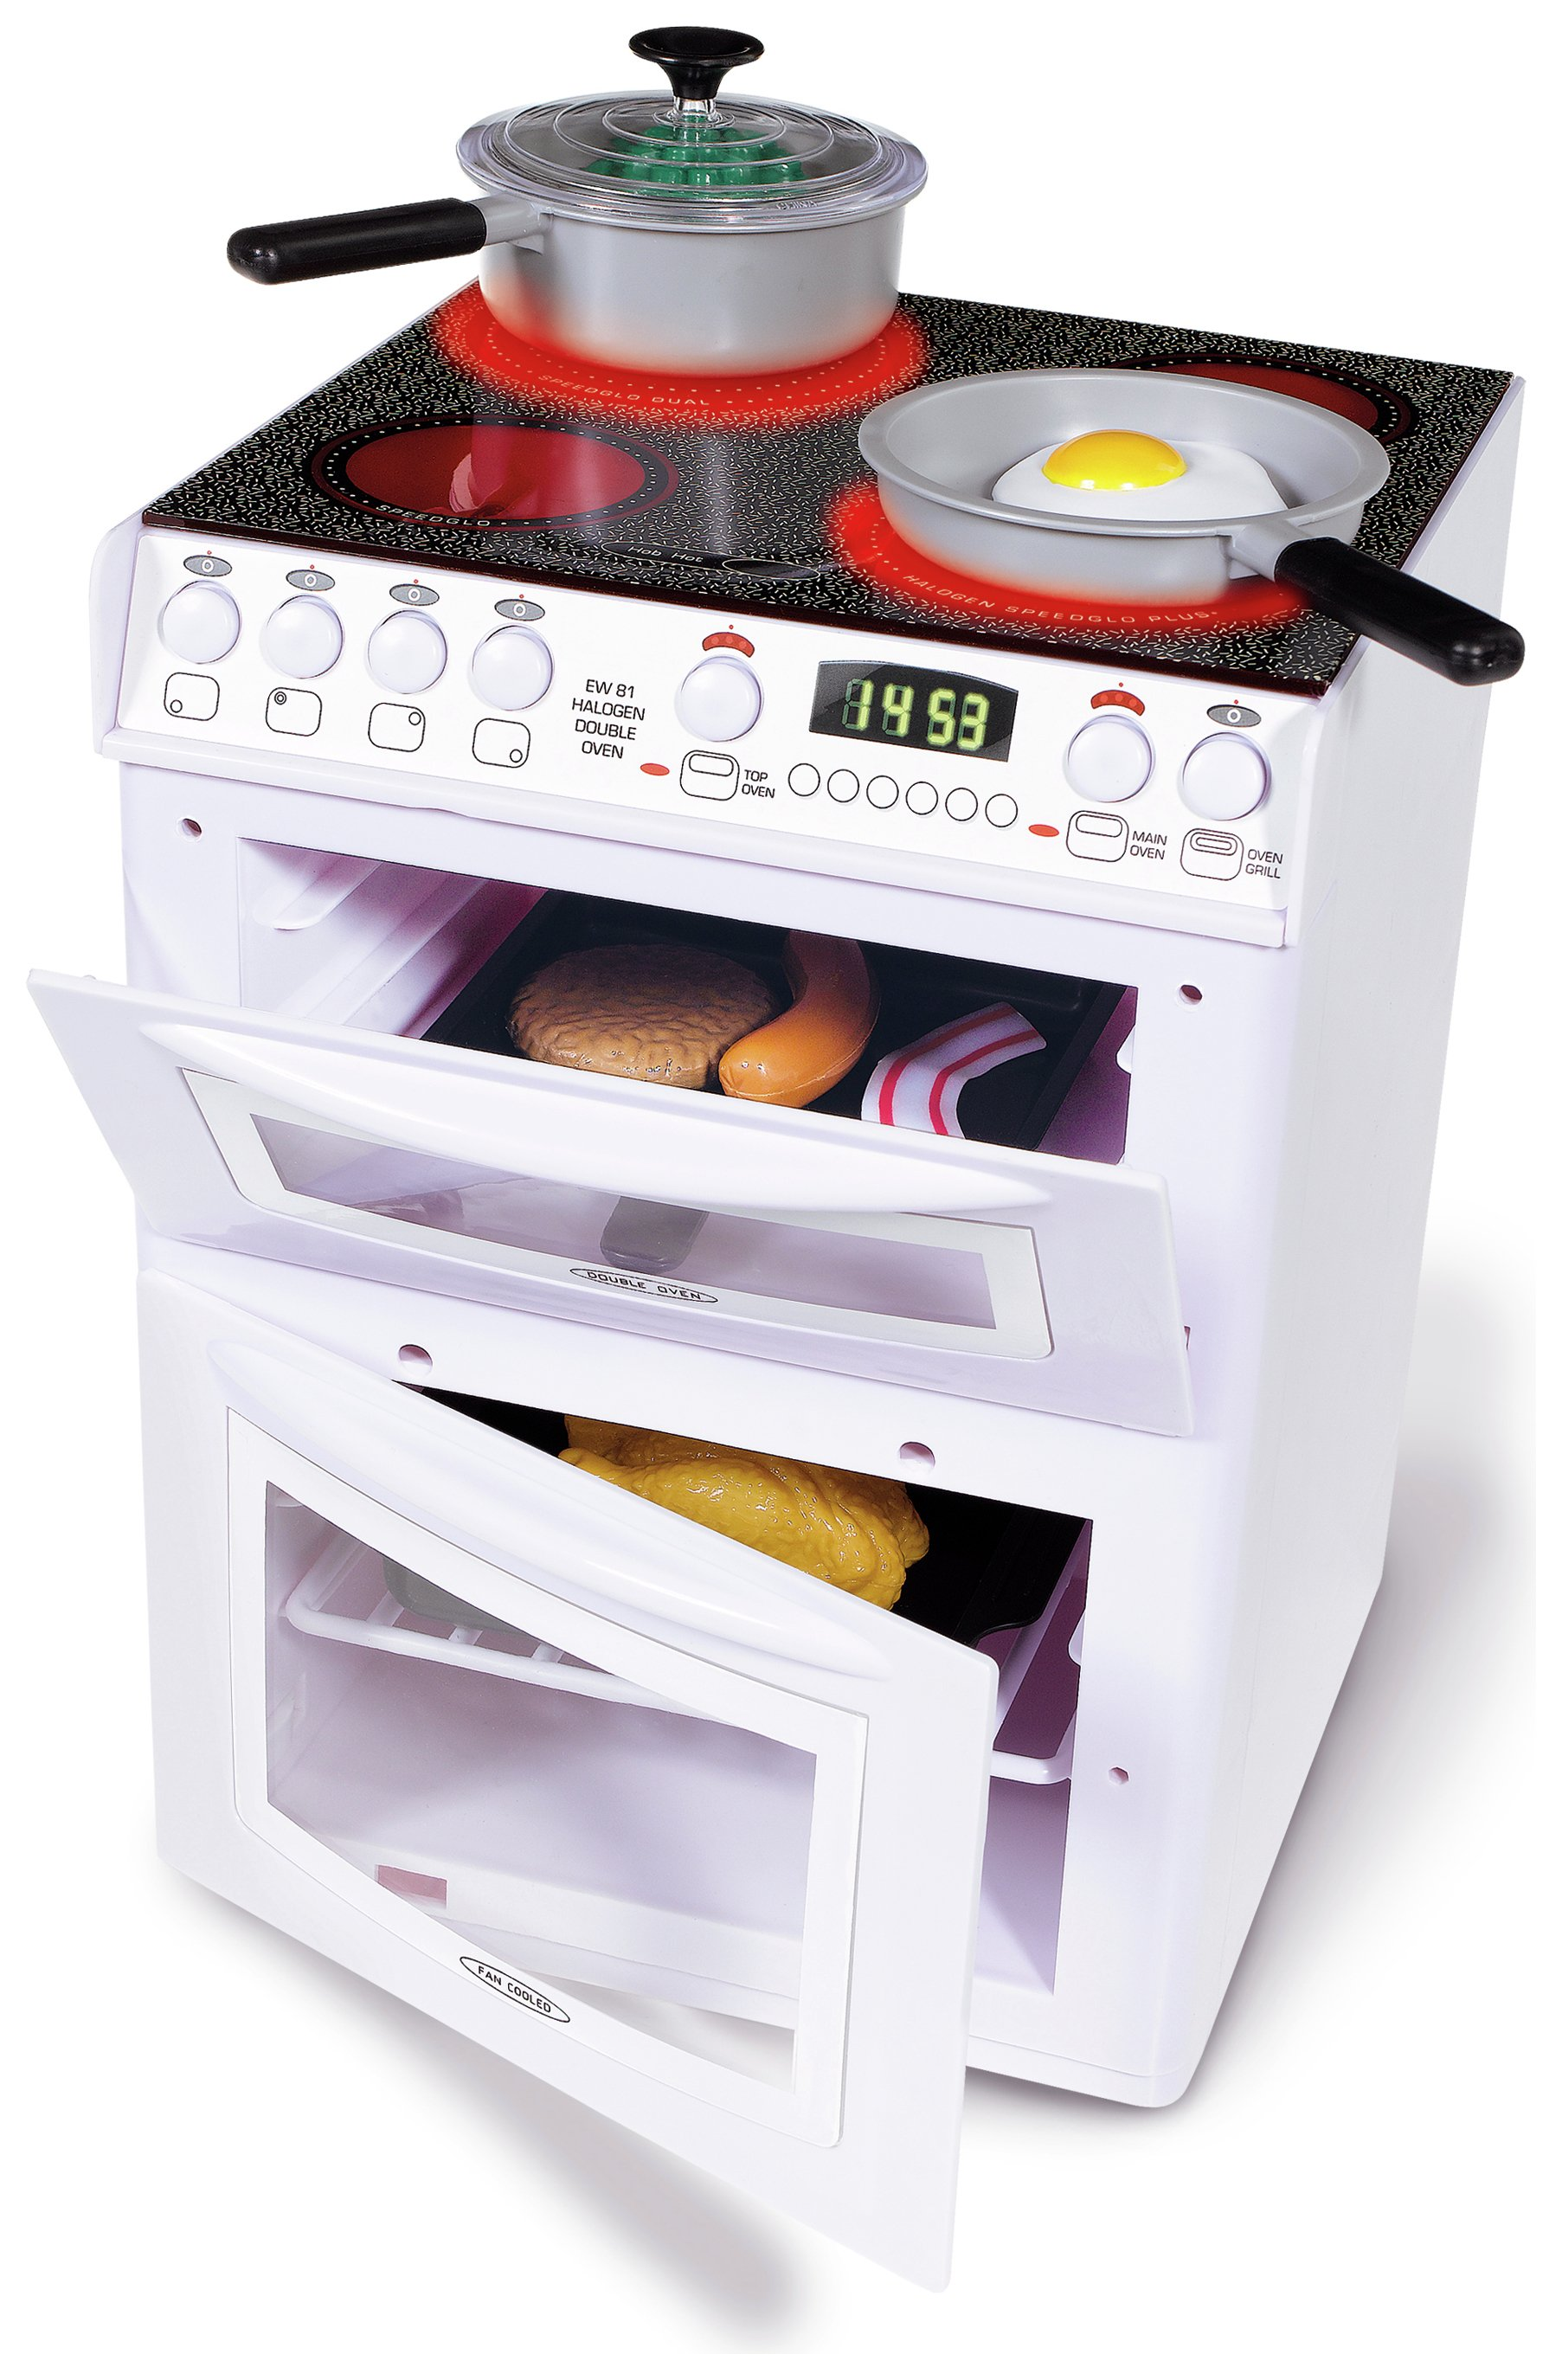 Image of Casdon - Electronic Children's Cooker